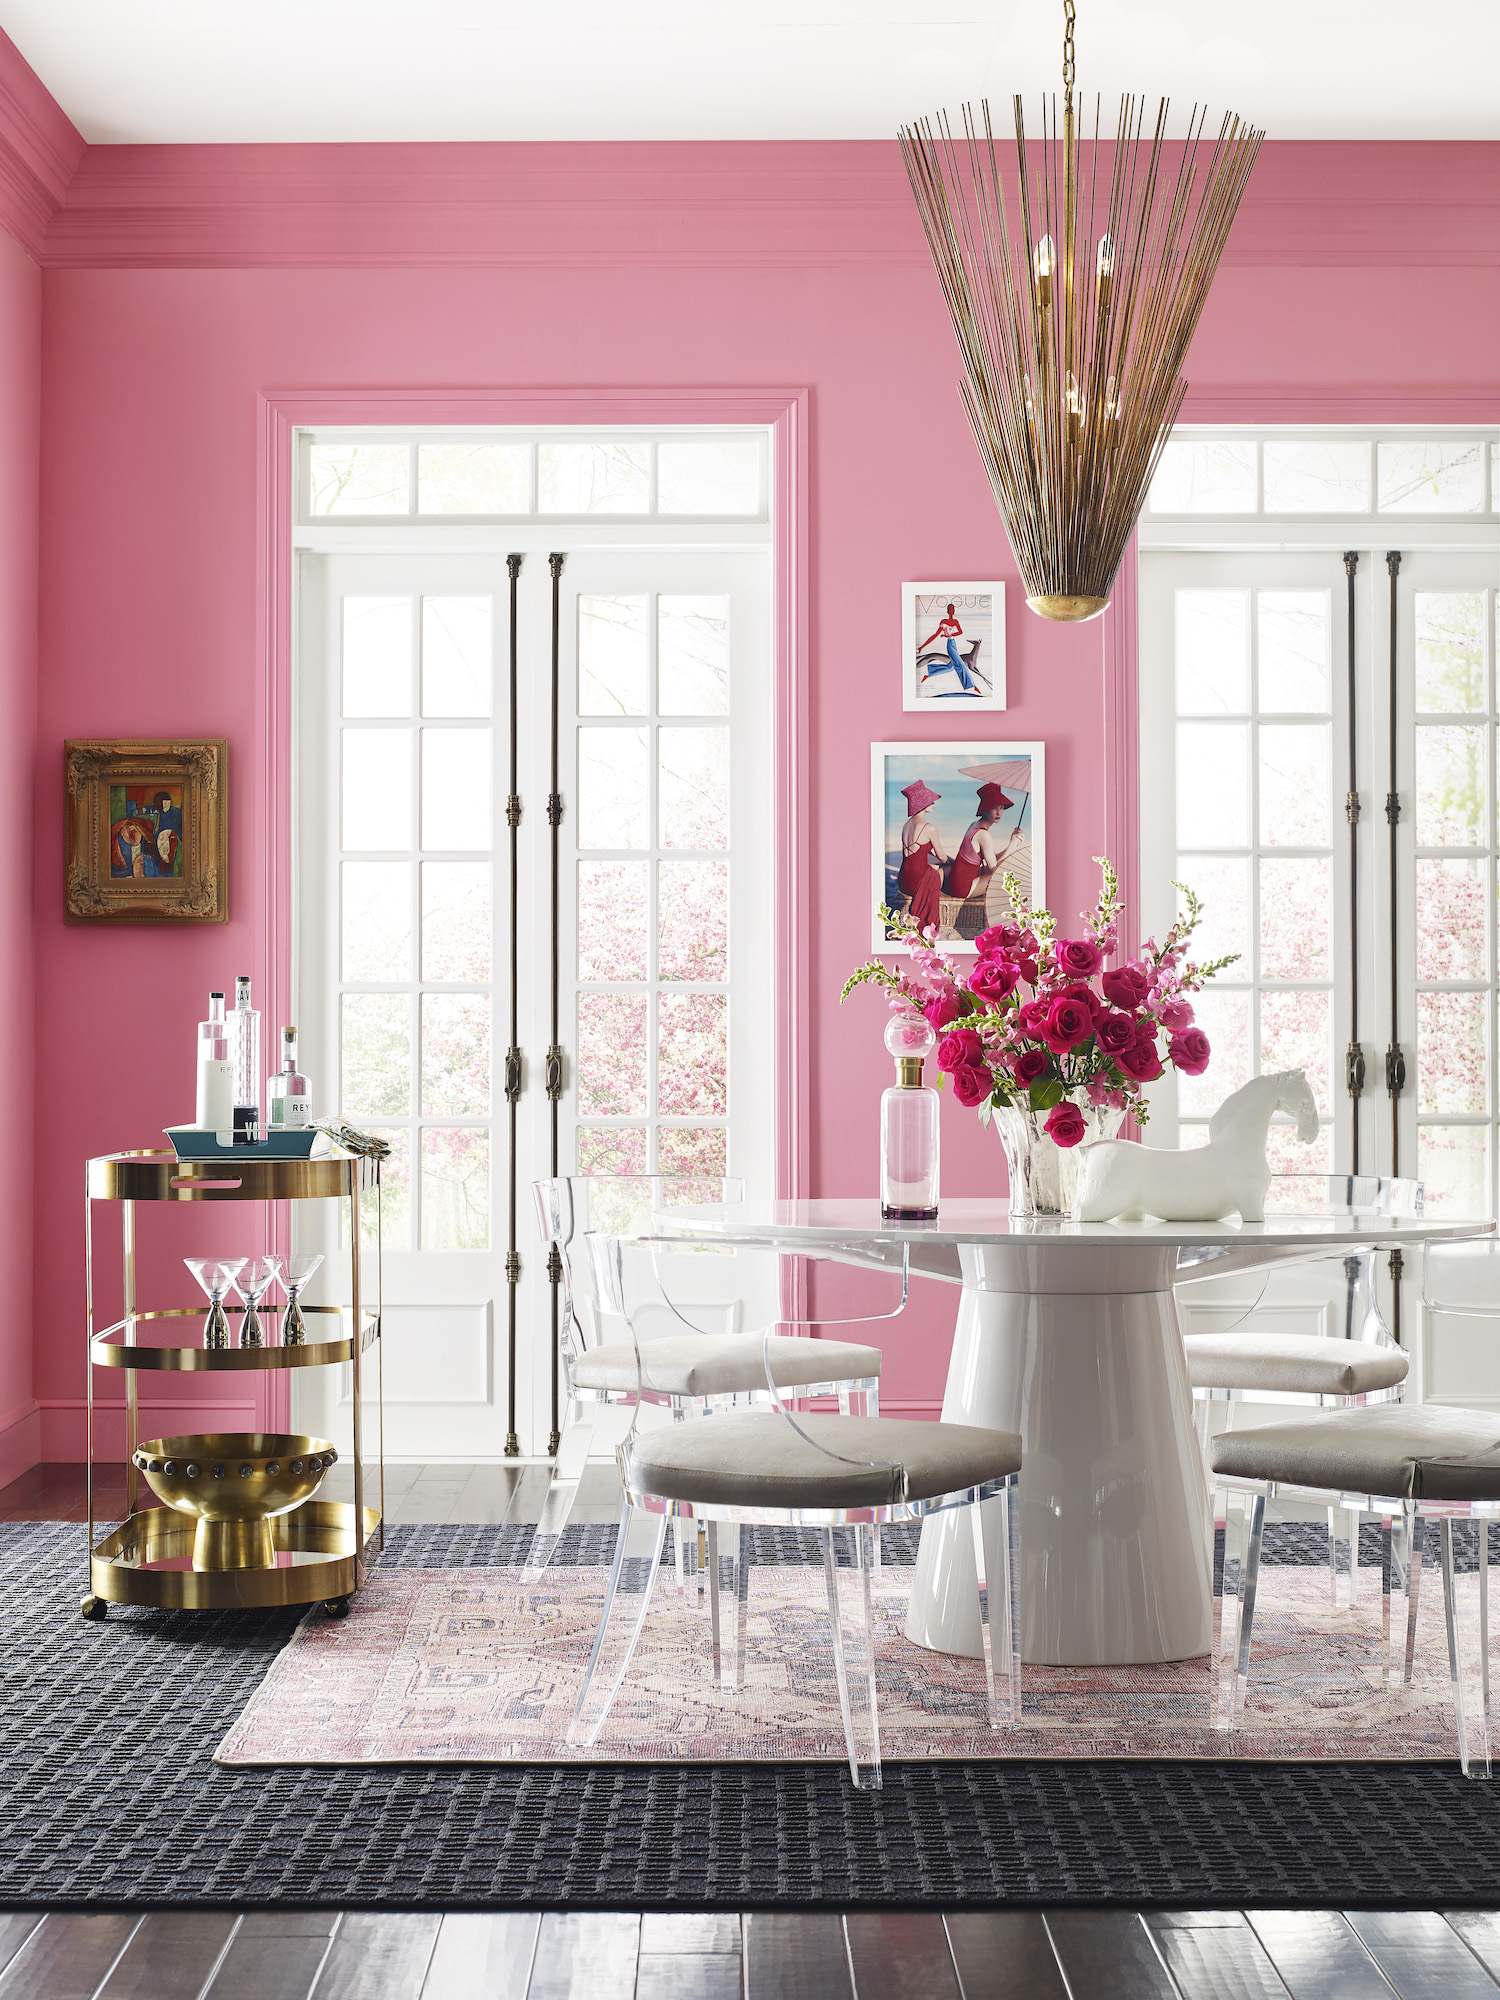 Sherwin Williams color forecast 2021, pink walls in dining room